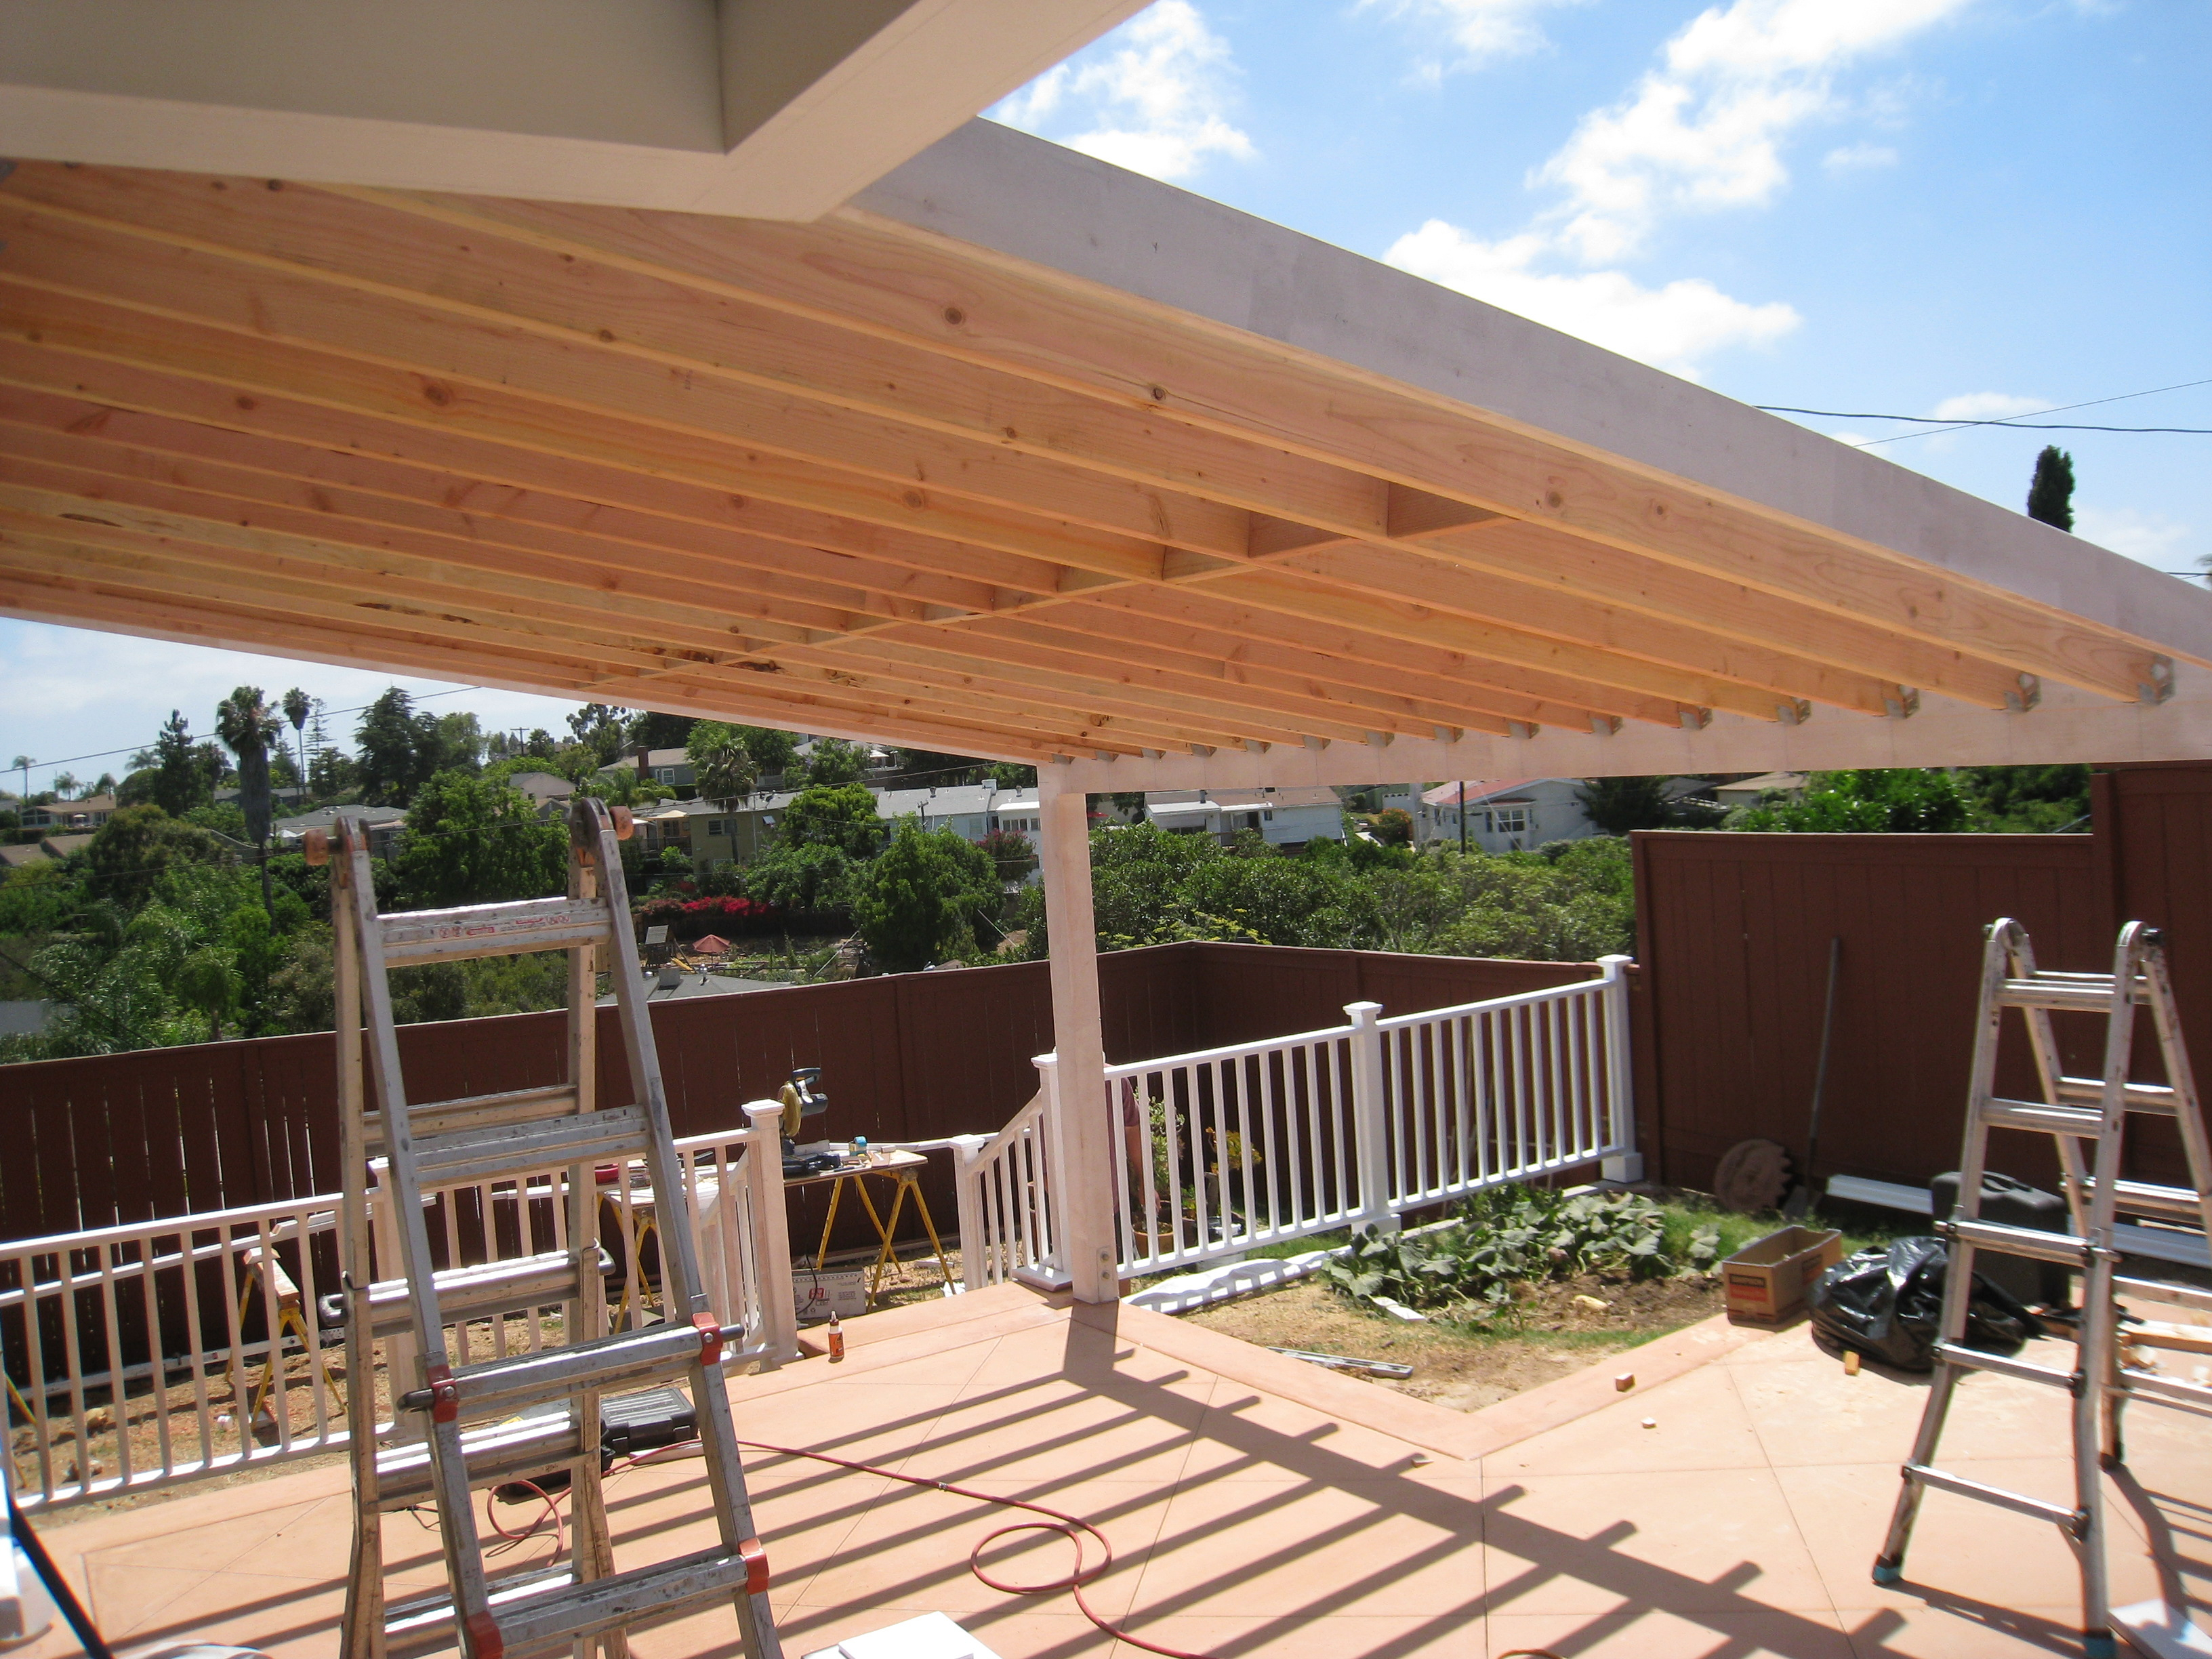 Best Patio Covers Sportwholehousefansco With Proportions 3264 X 2448